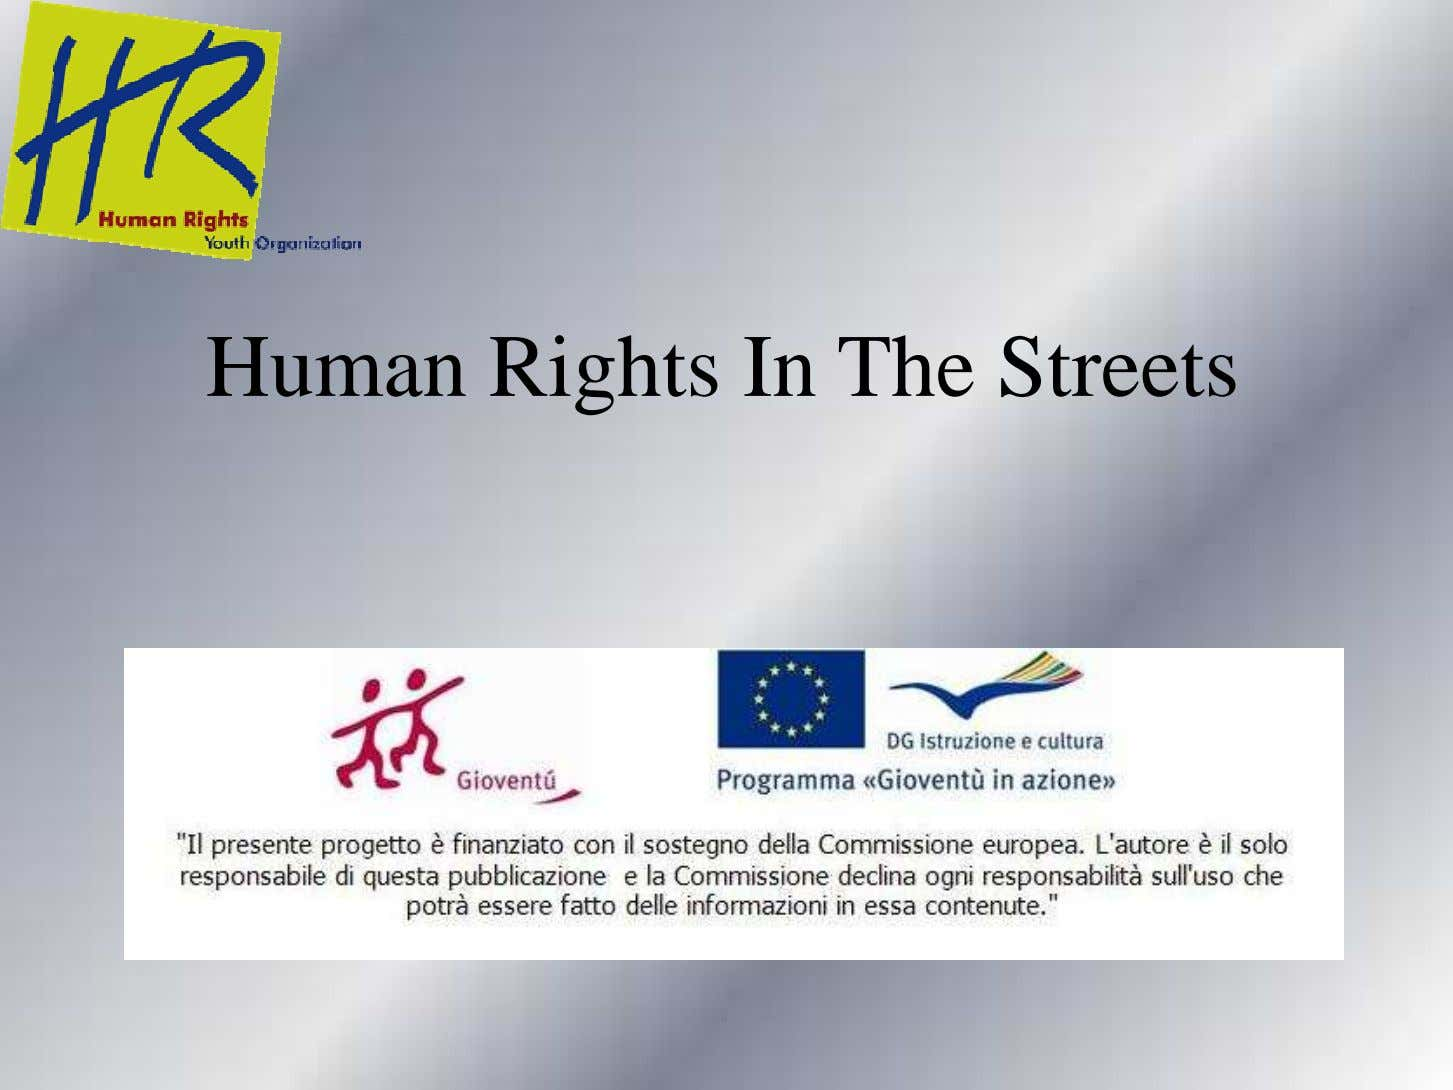 Human Rights In The Streets